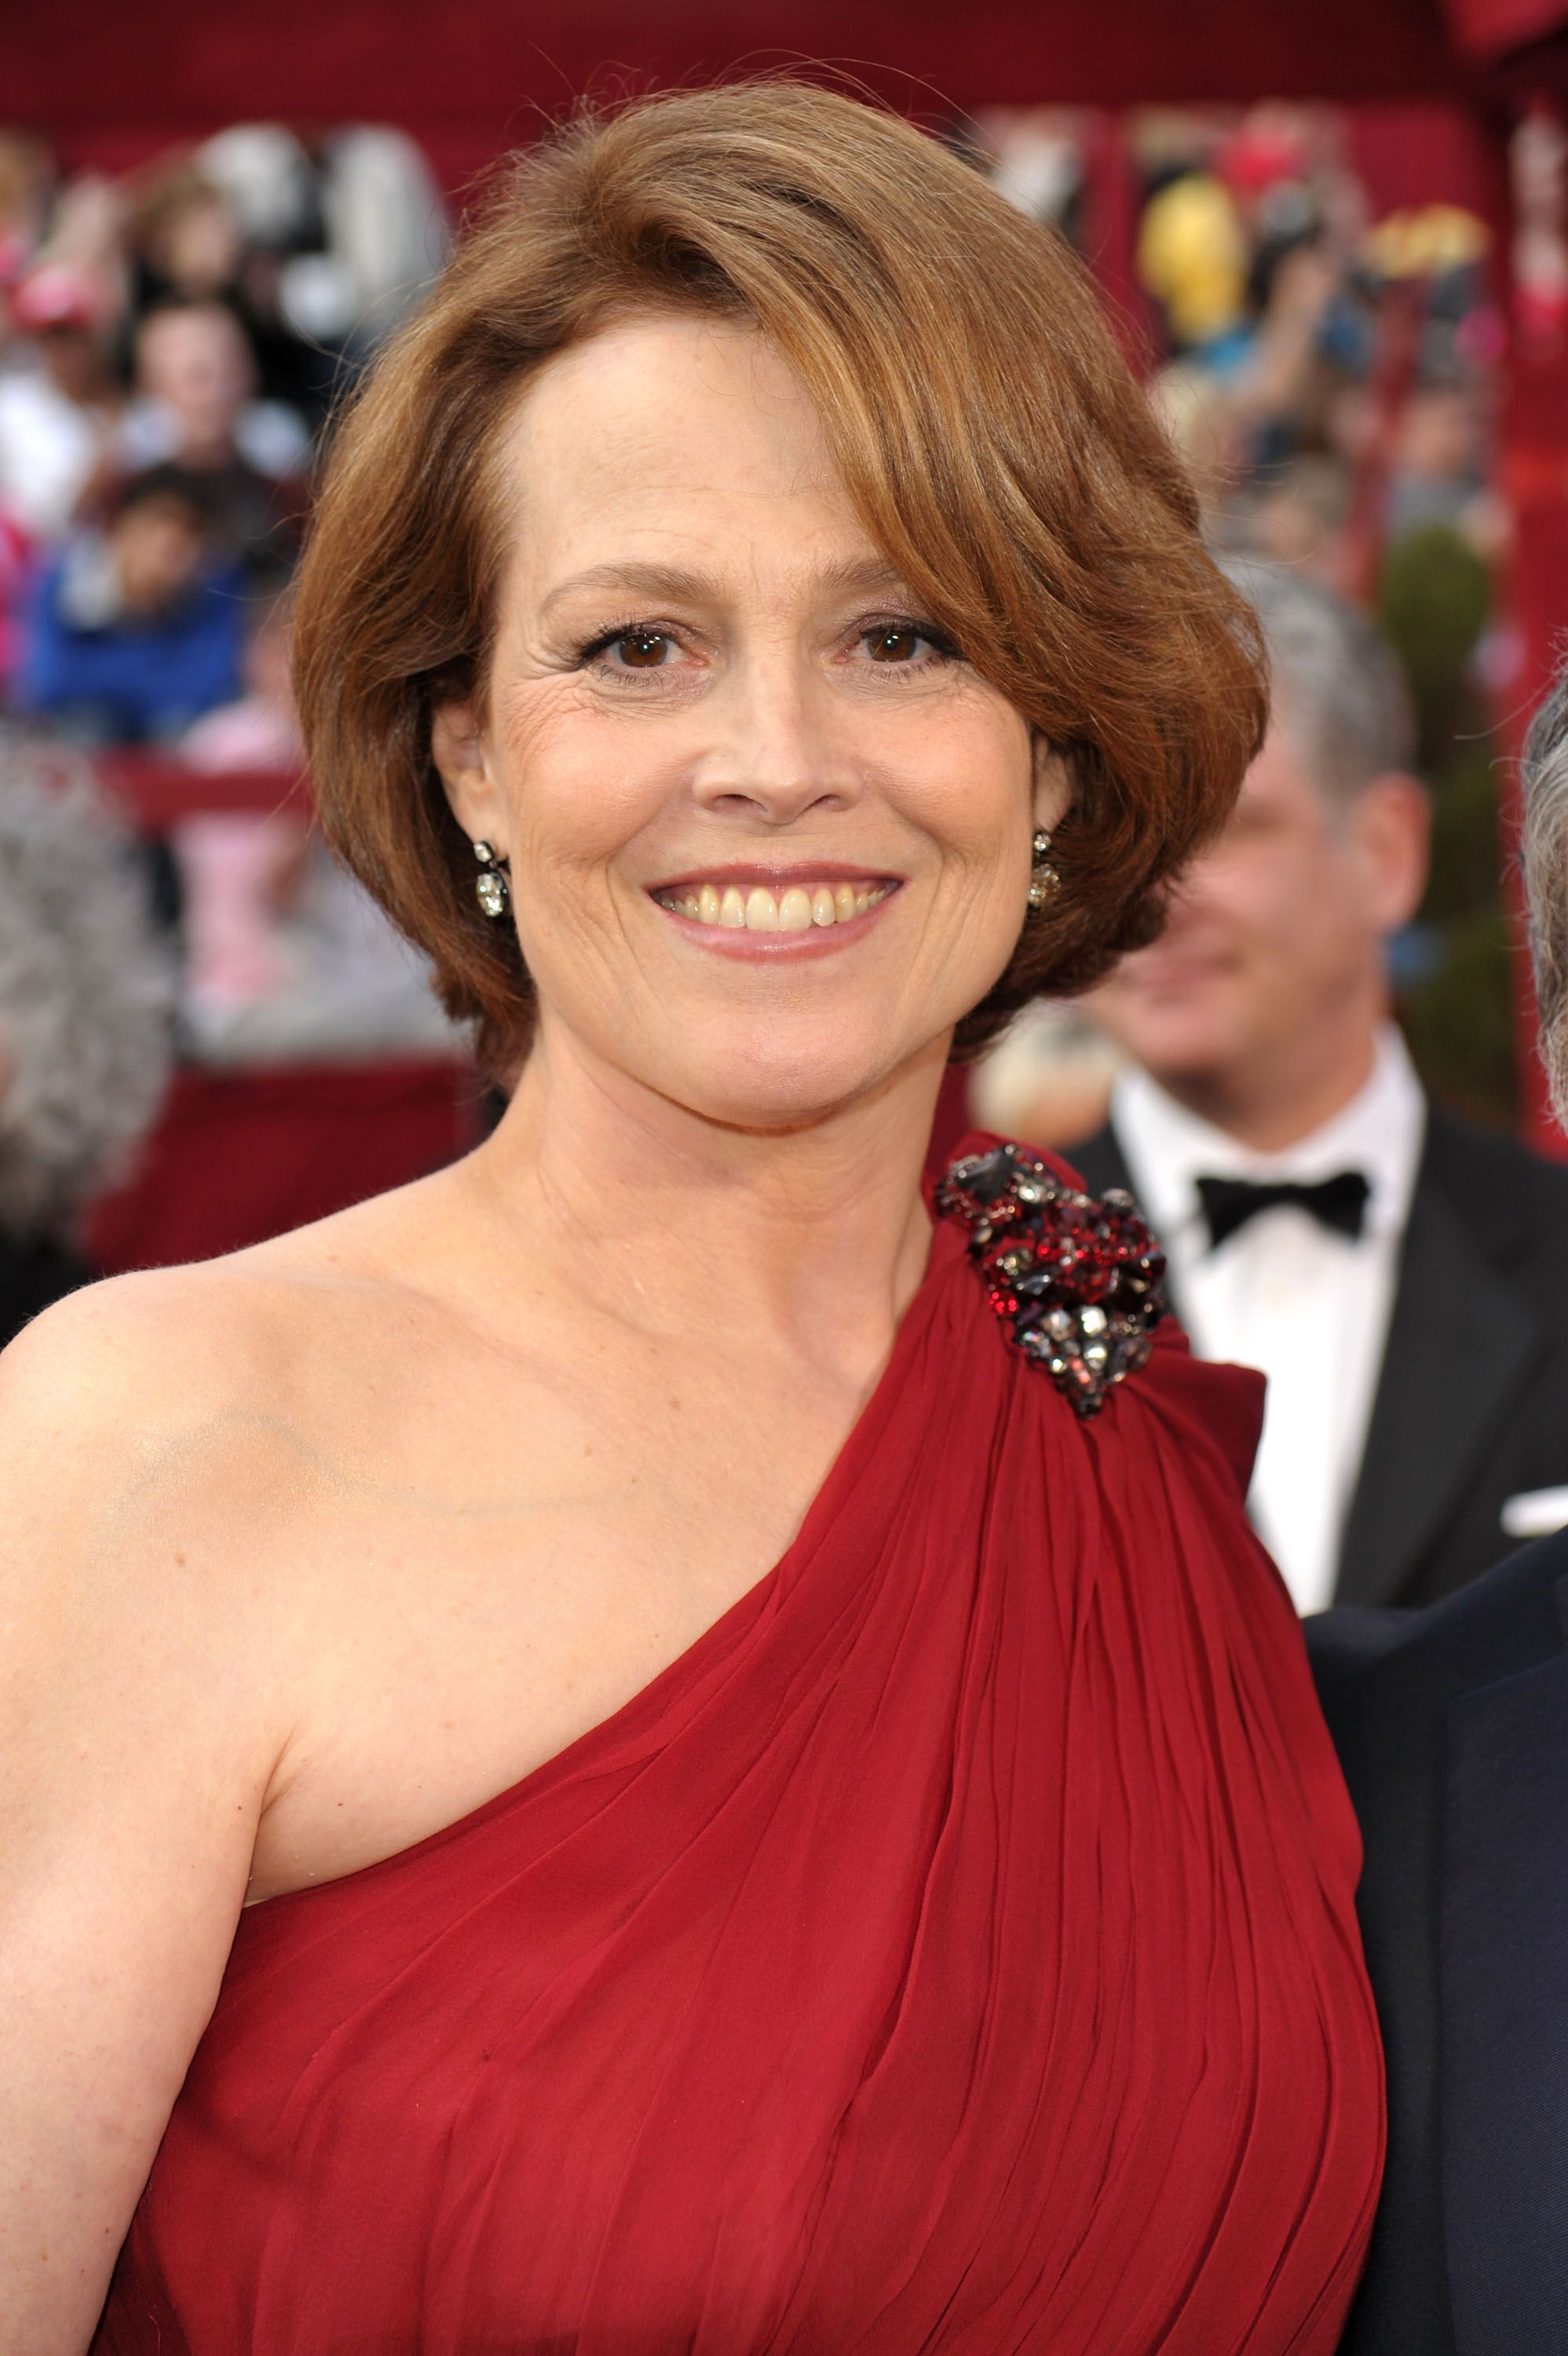 2019 Sigourney Weaver nudes (27 photo), Pussy, Fappening, Twitter, braless 2015